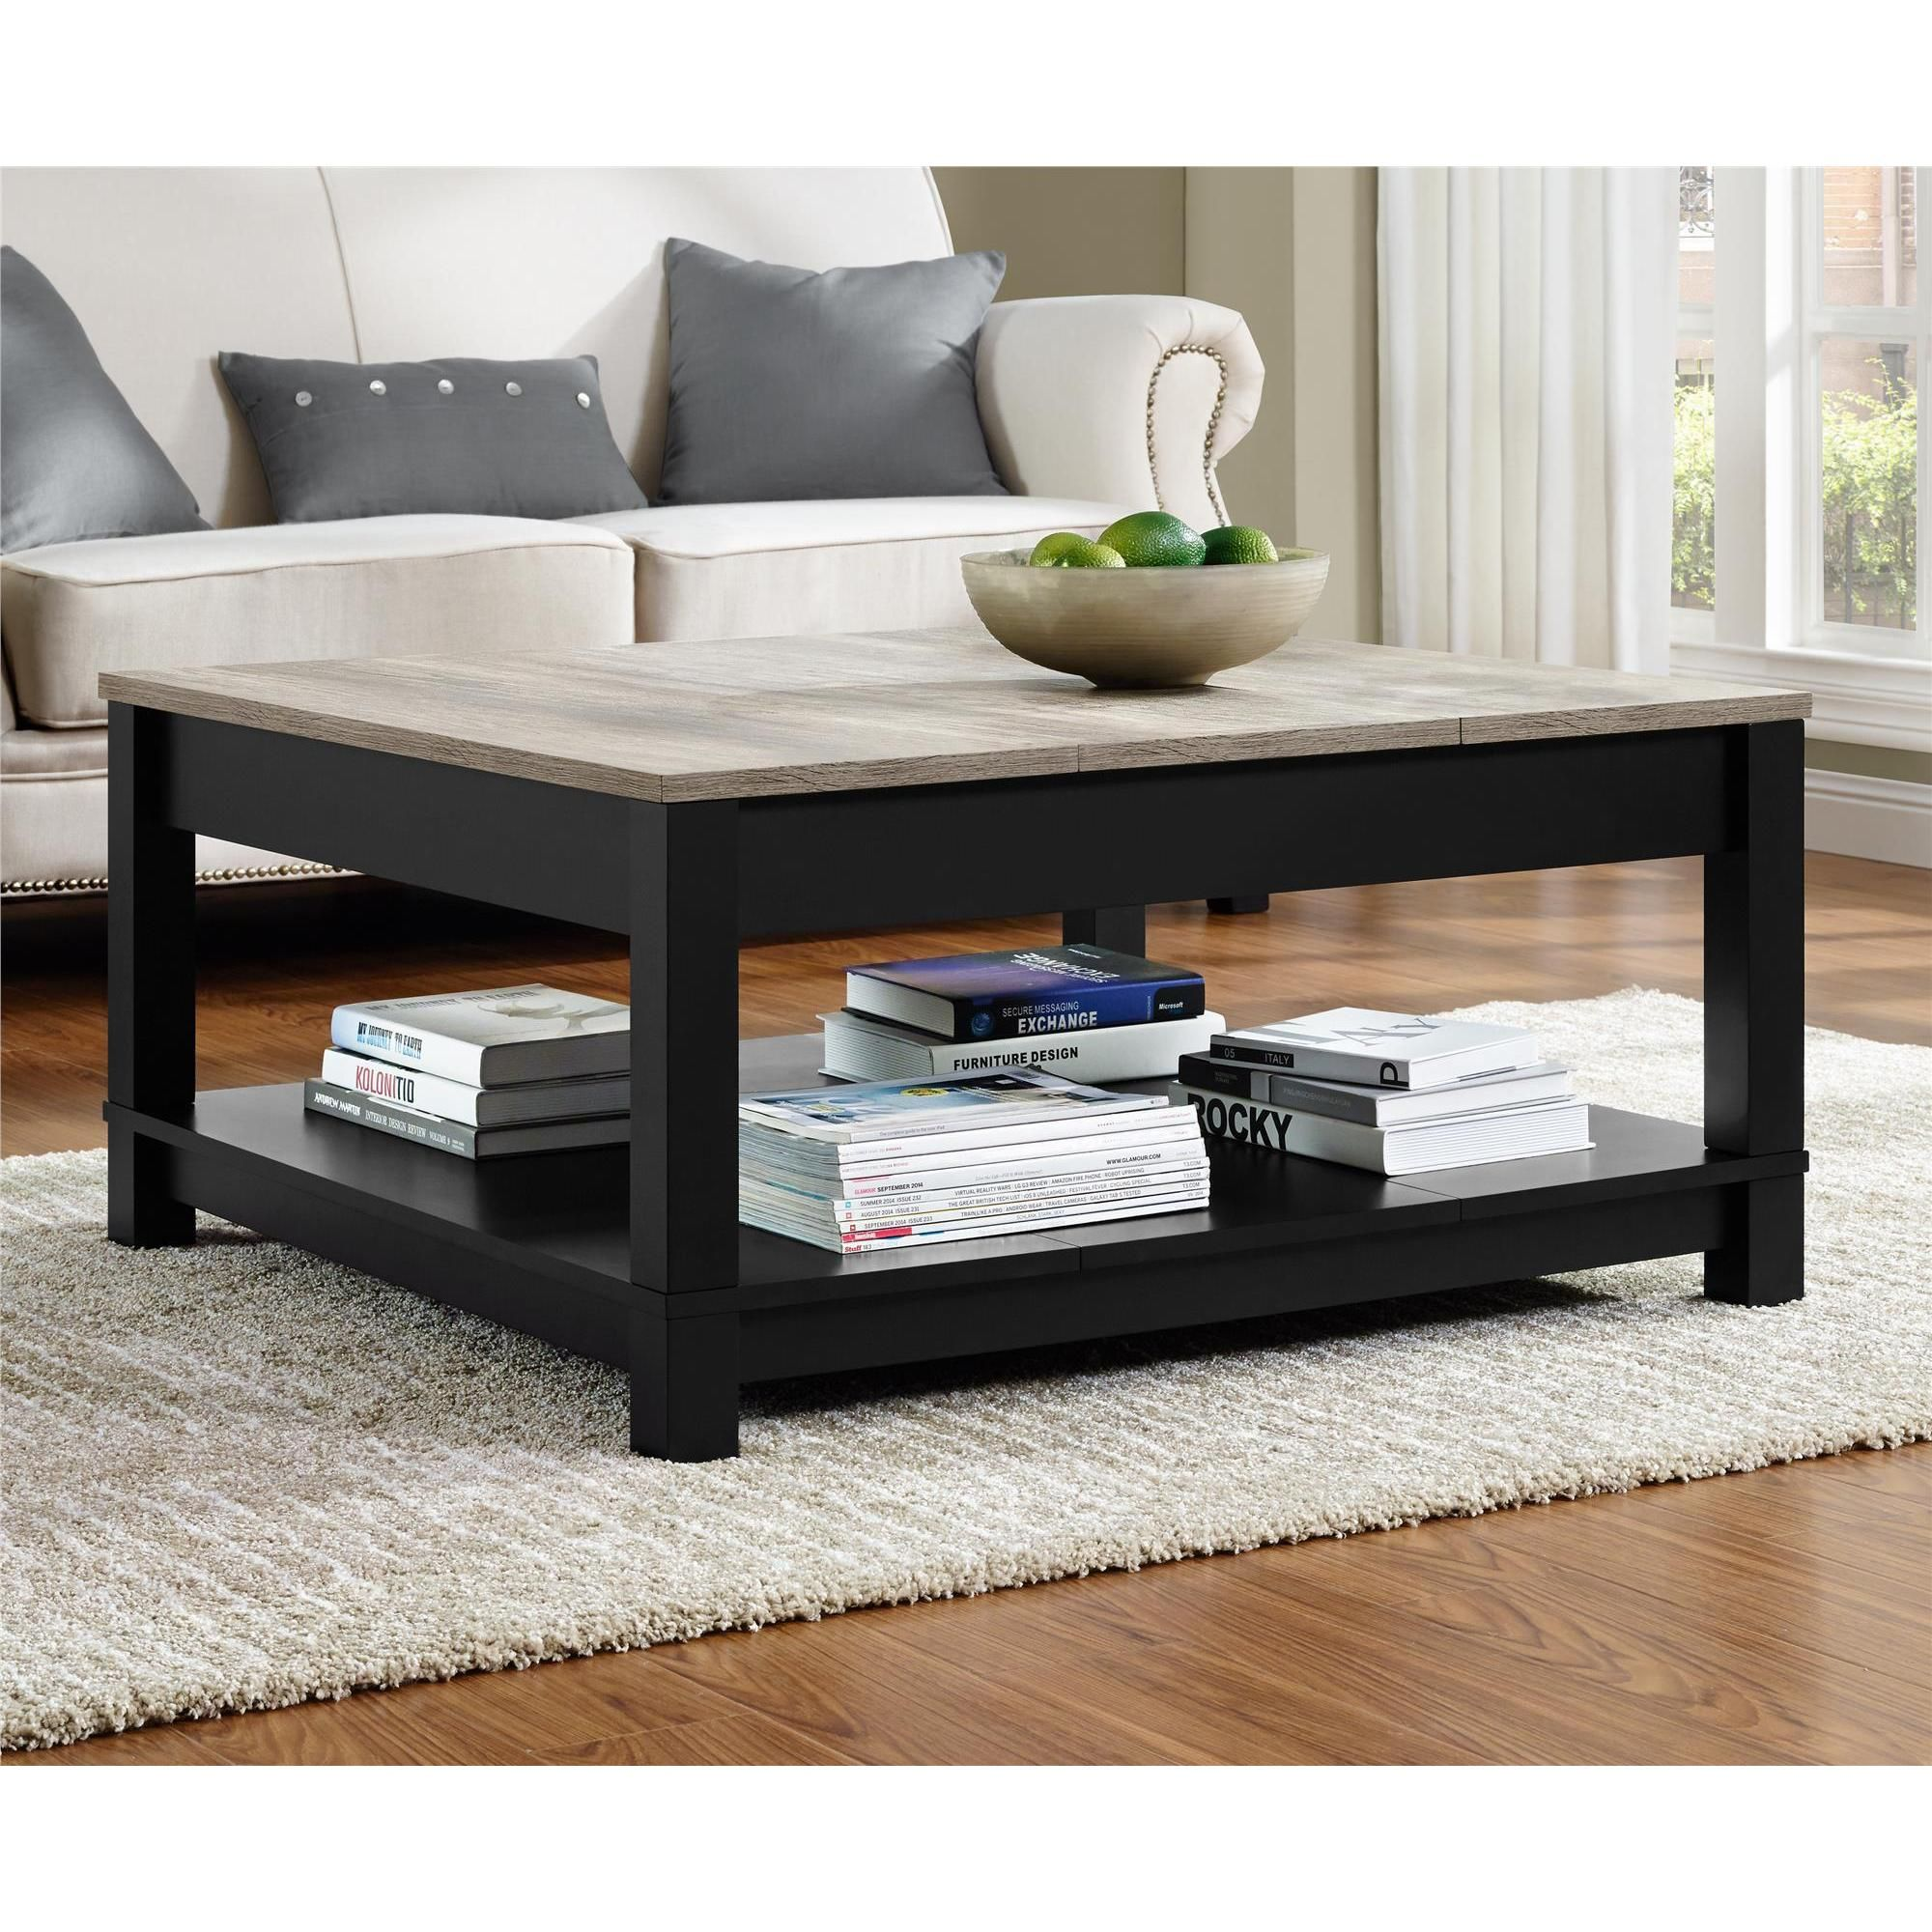 Ameriwood Home Carver Coffee Table (Coffee Table, Black Sonoma Oak),